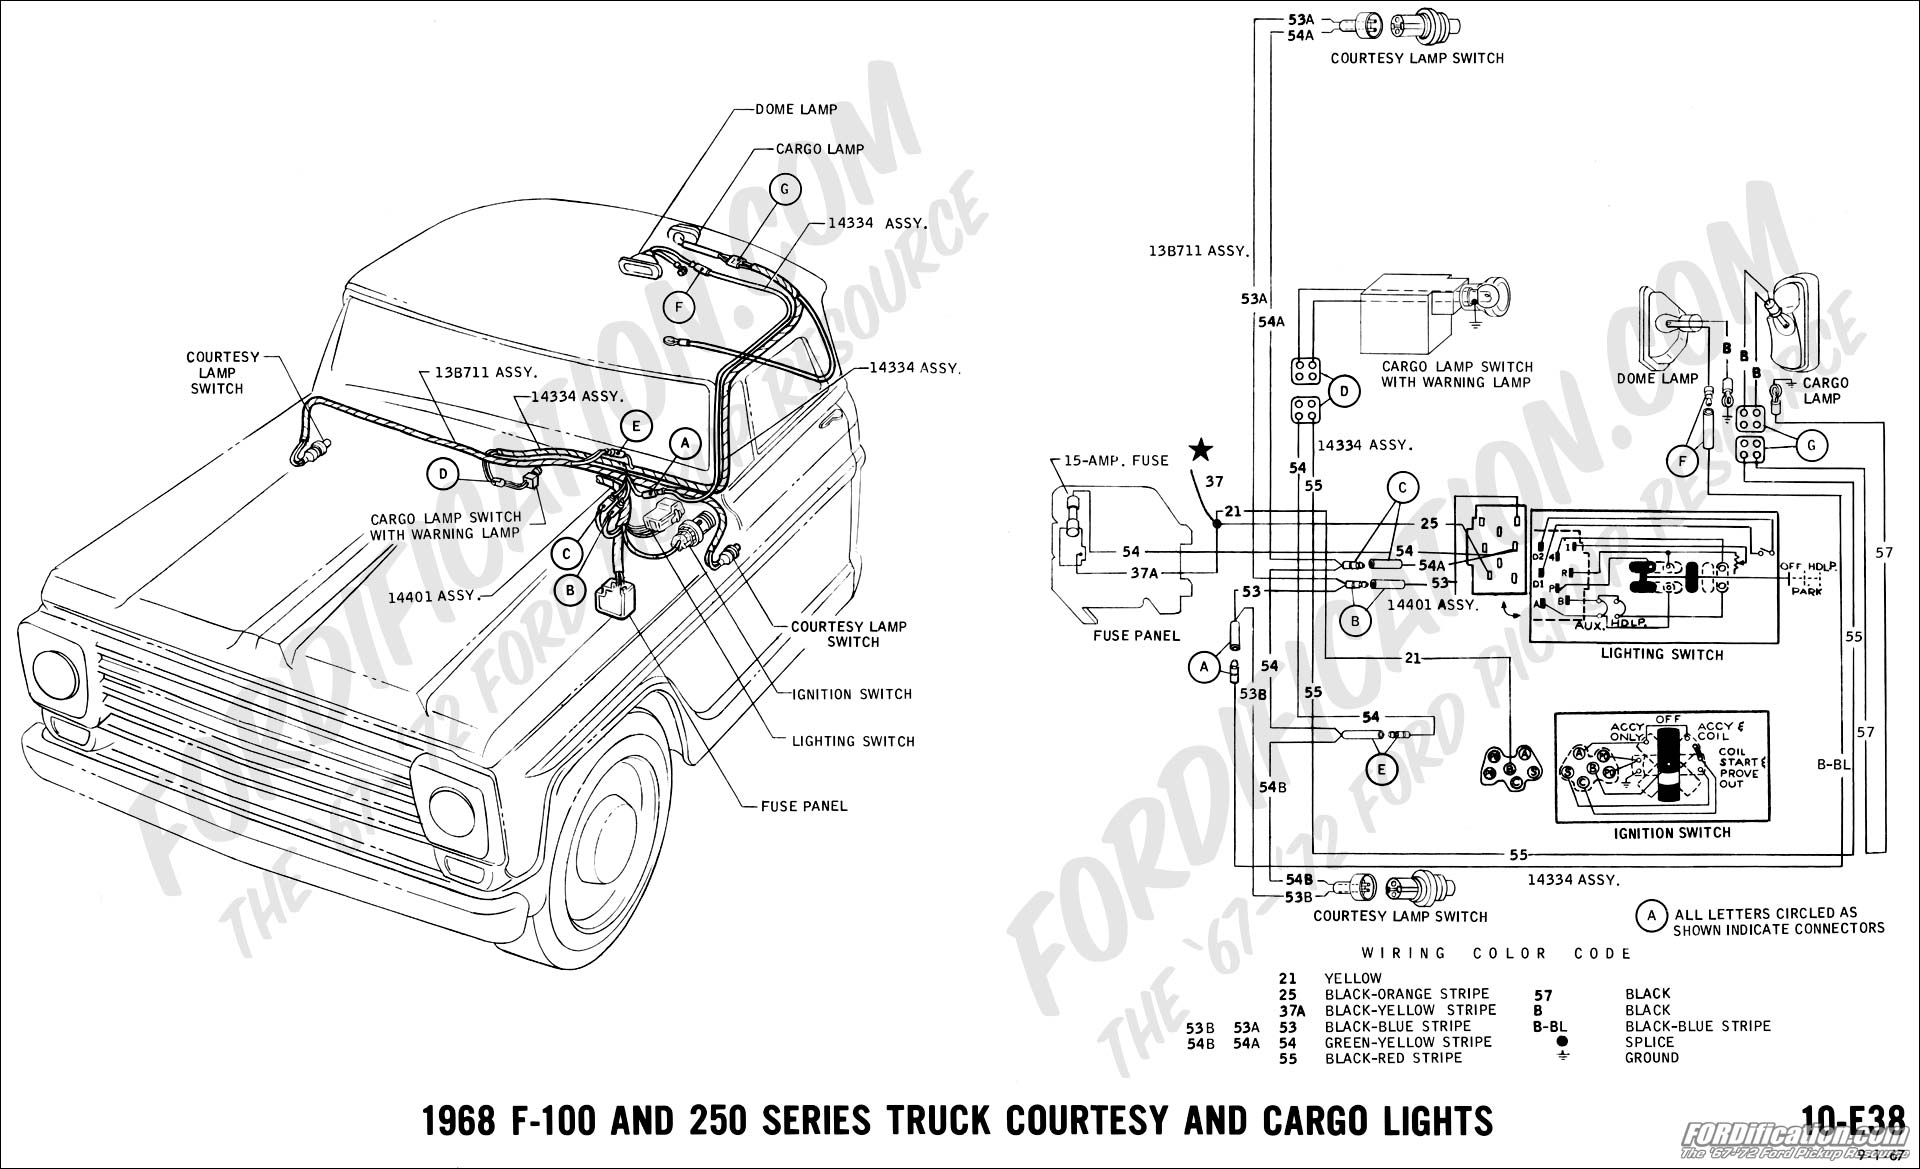 1972 Ford Truck Air Conditioner Blower Motor Wiring Diagrams Car 1970 Impala Harness 1968 F 100 And 250 Courtesy Cargo Lights